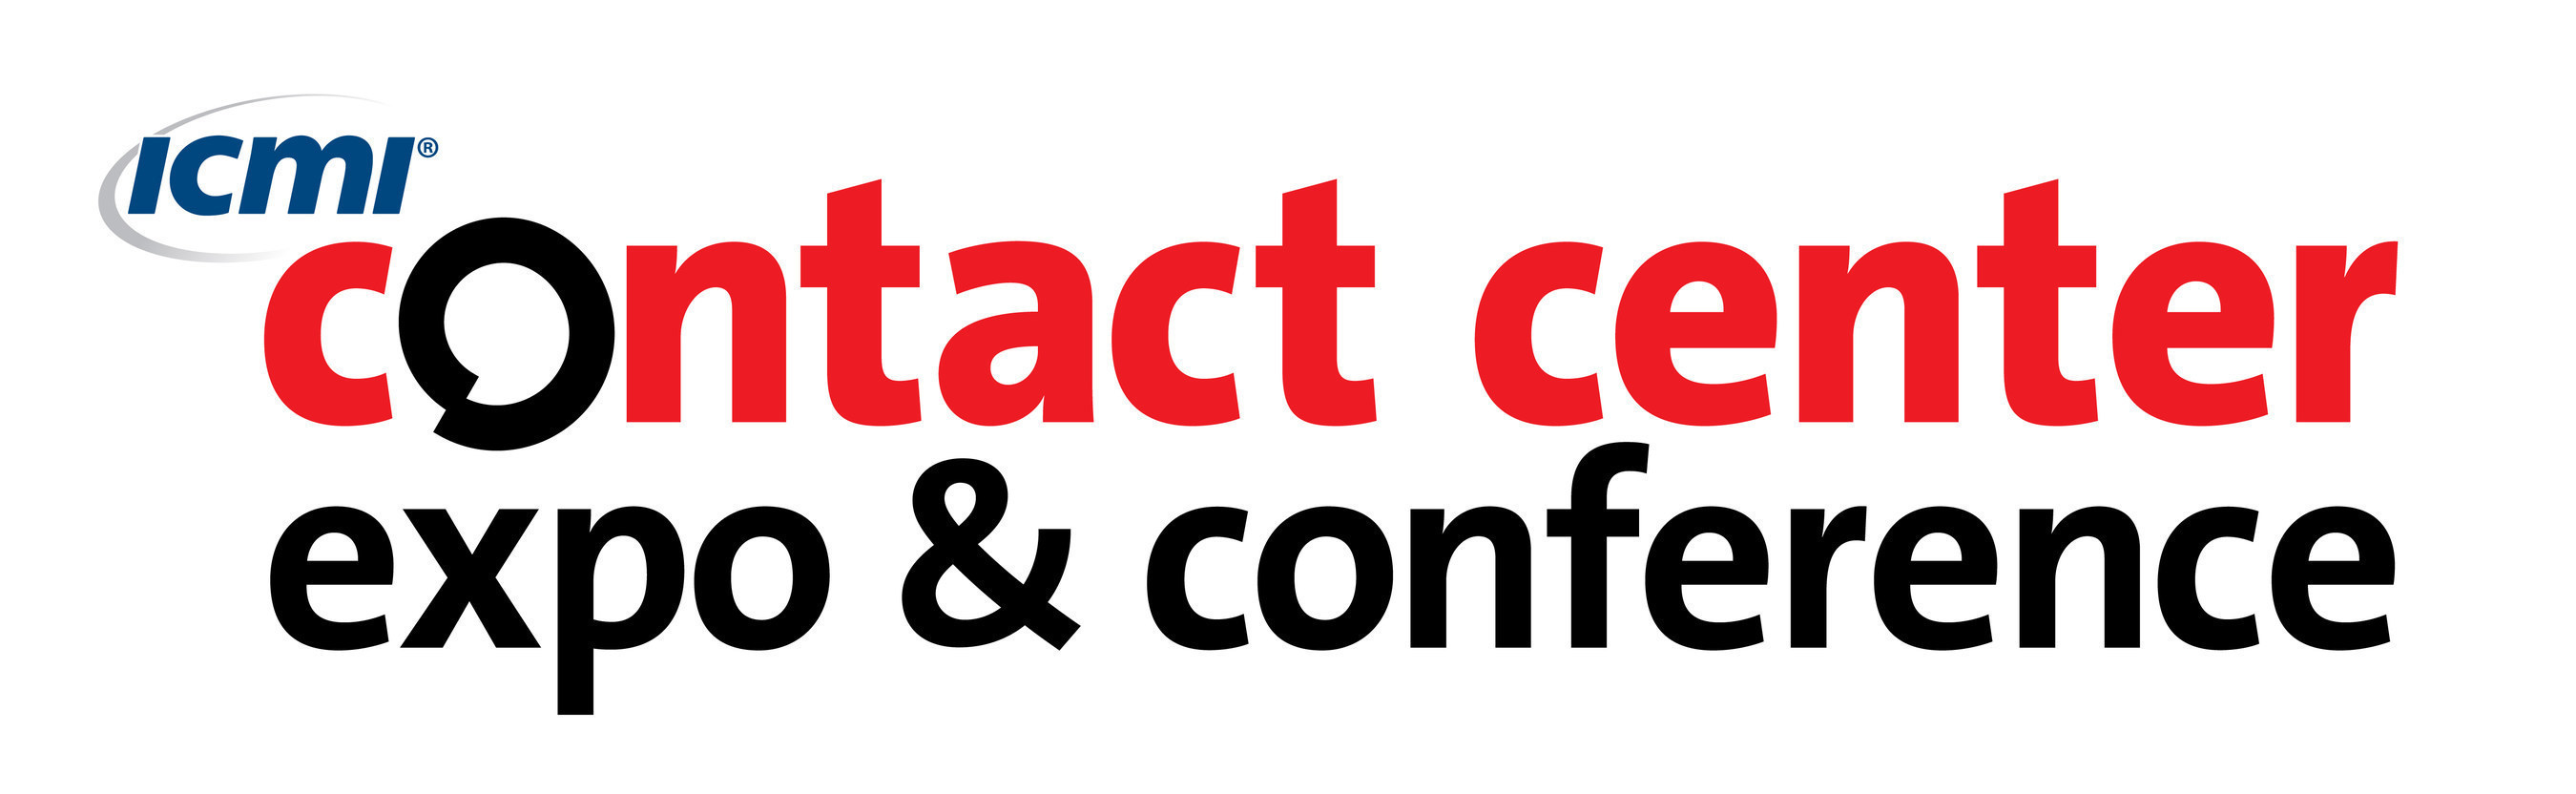 ICMI Contact Center Expo & Conference Announces Initial Keynote Lineup for Spring Event